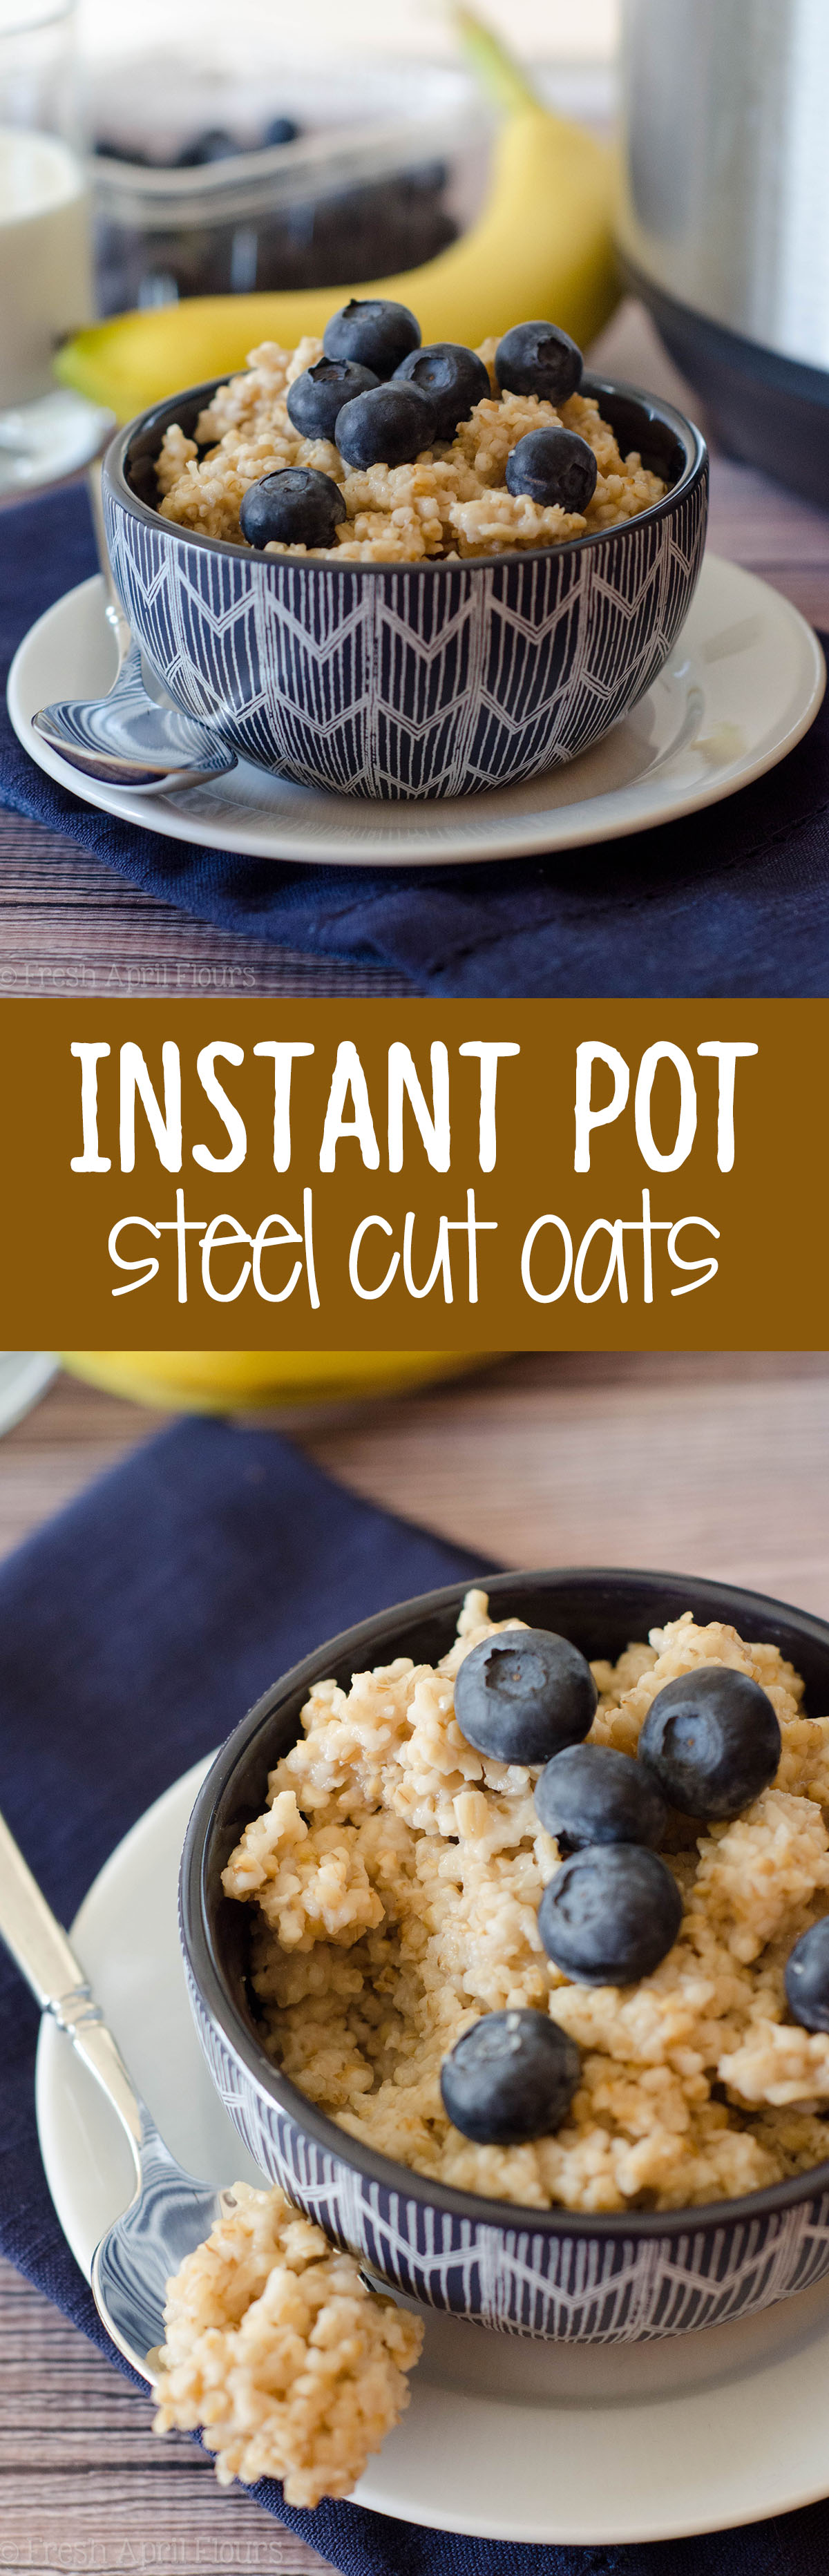 Instant Pot Steel Cut Oats: Everything you love about steel cut oats WITHOUT all the time it takes to cook them on the stove. Soft and fluffy and ready for all of your favorite add-ins!